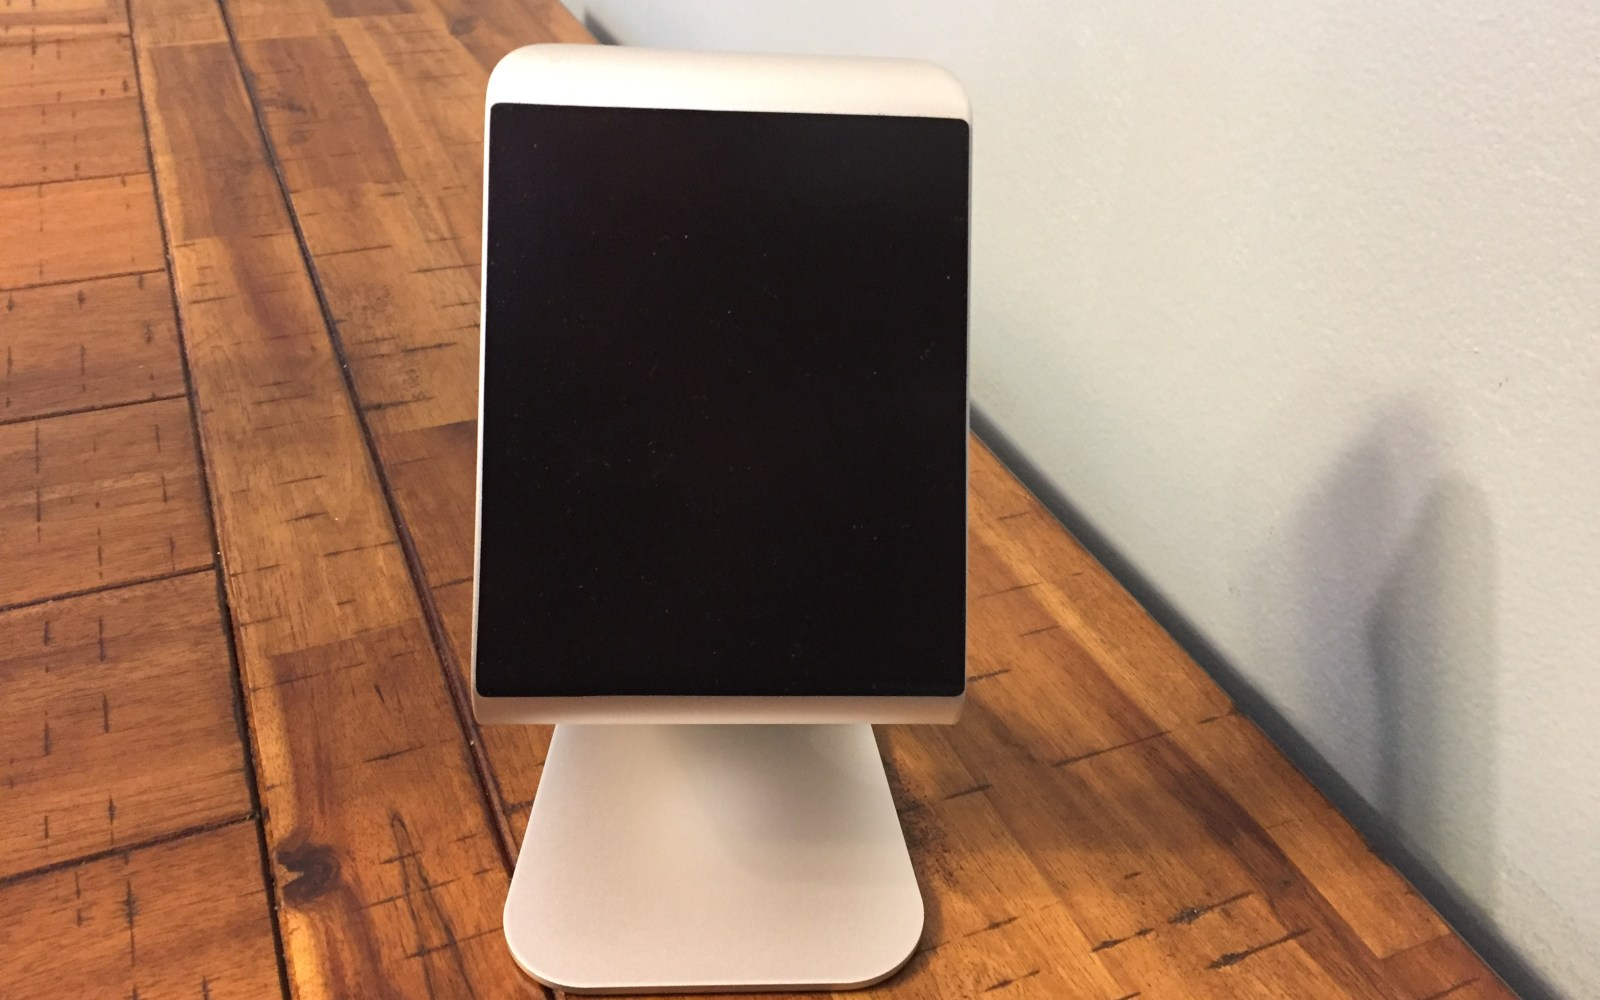 Review: Zand, the stand that makes using the iPad at a desk comfortable